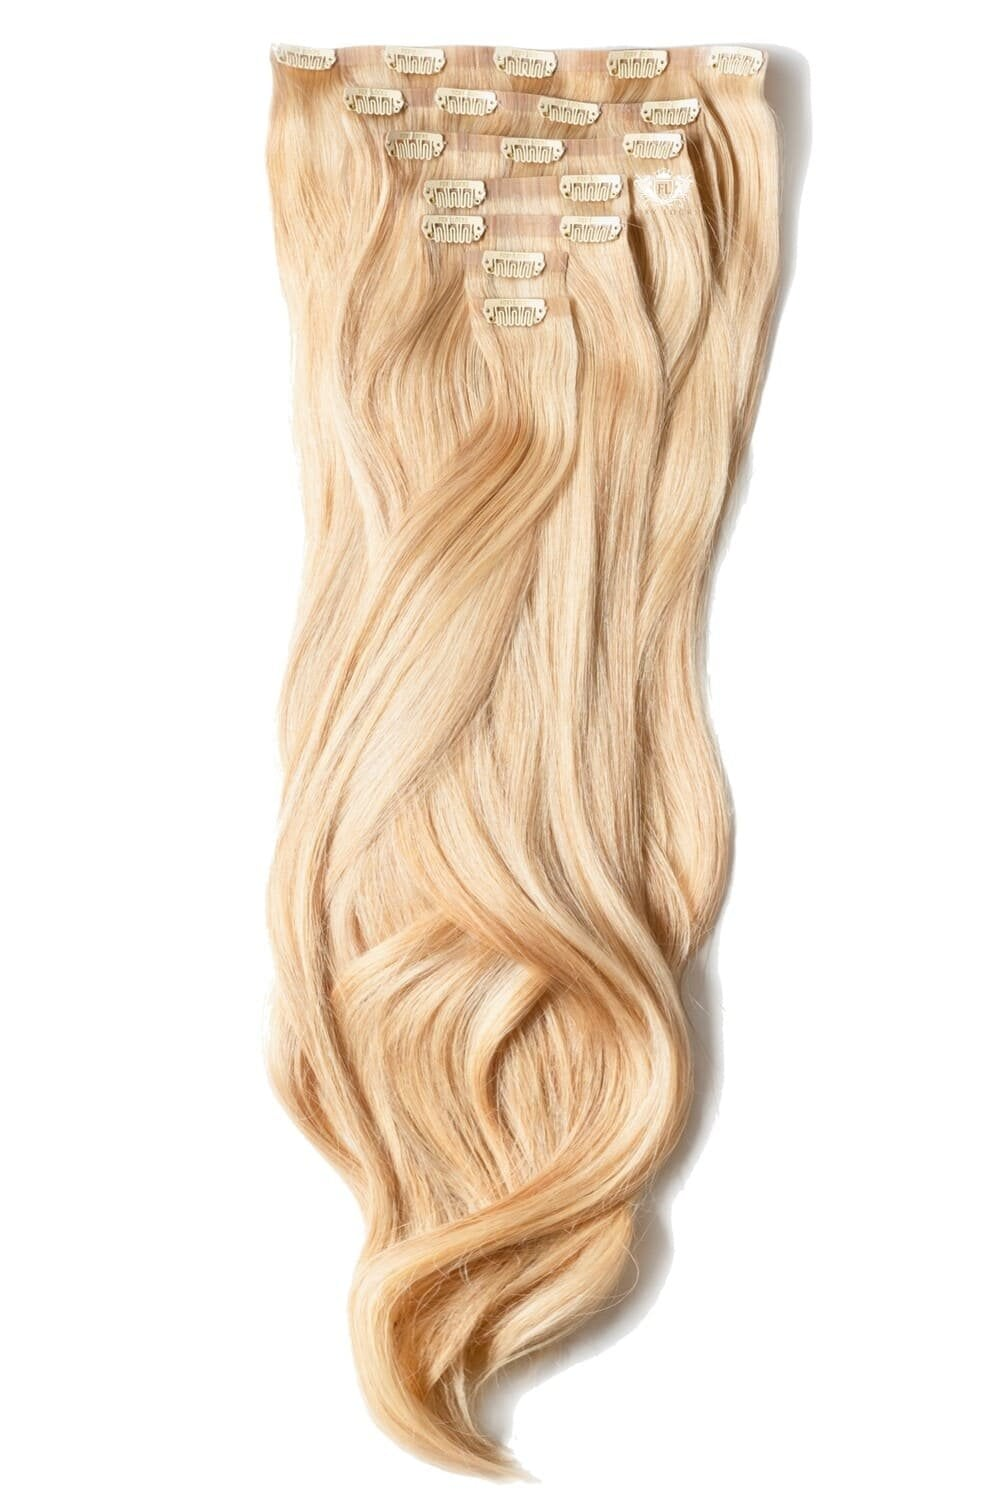 Cinnamon ginger volumizer 20 seamless clip in human hair sandy blonde luxurious 24 seamless clip in human hair extensions 280g pmusecretfo Gallery